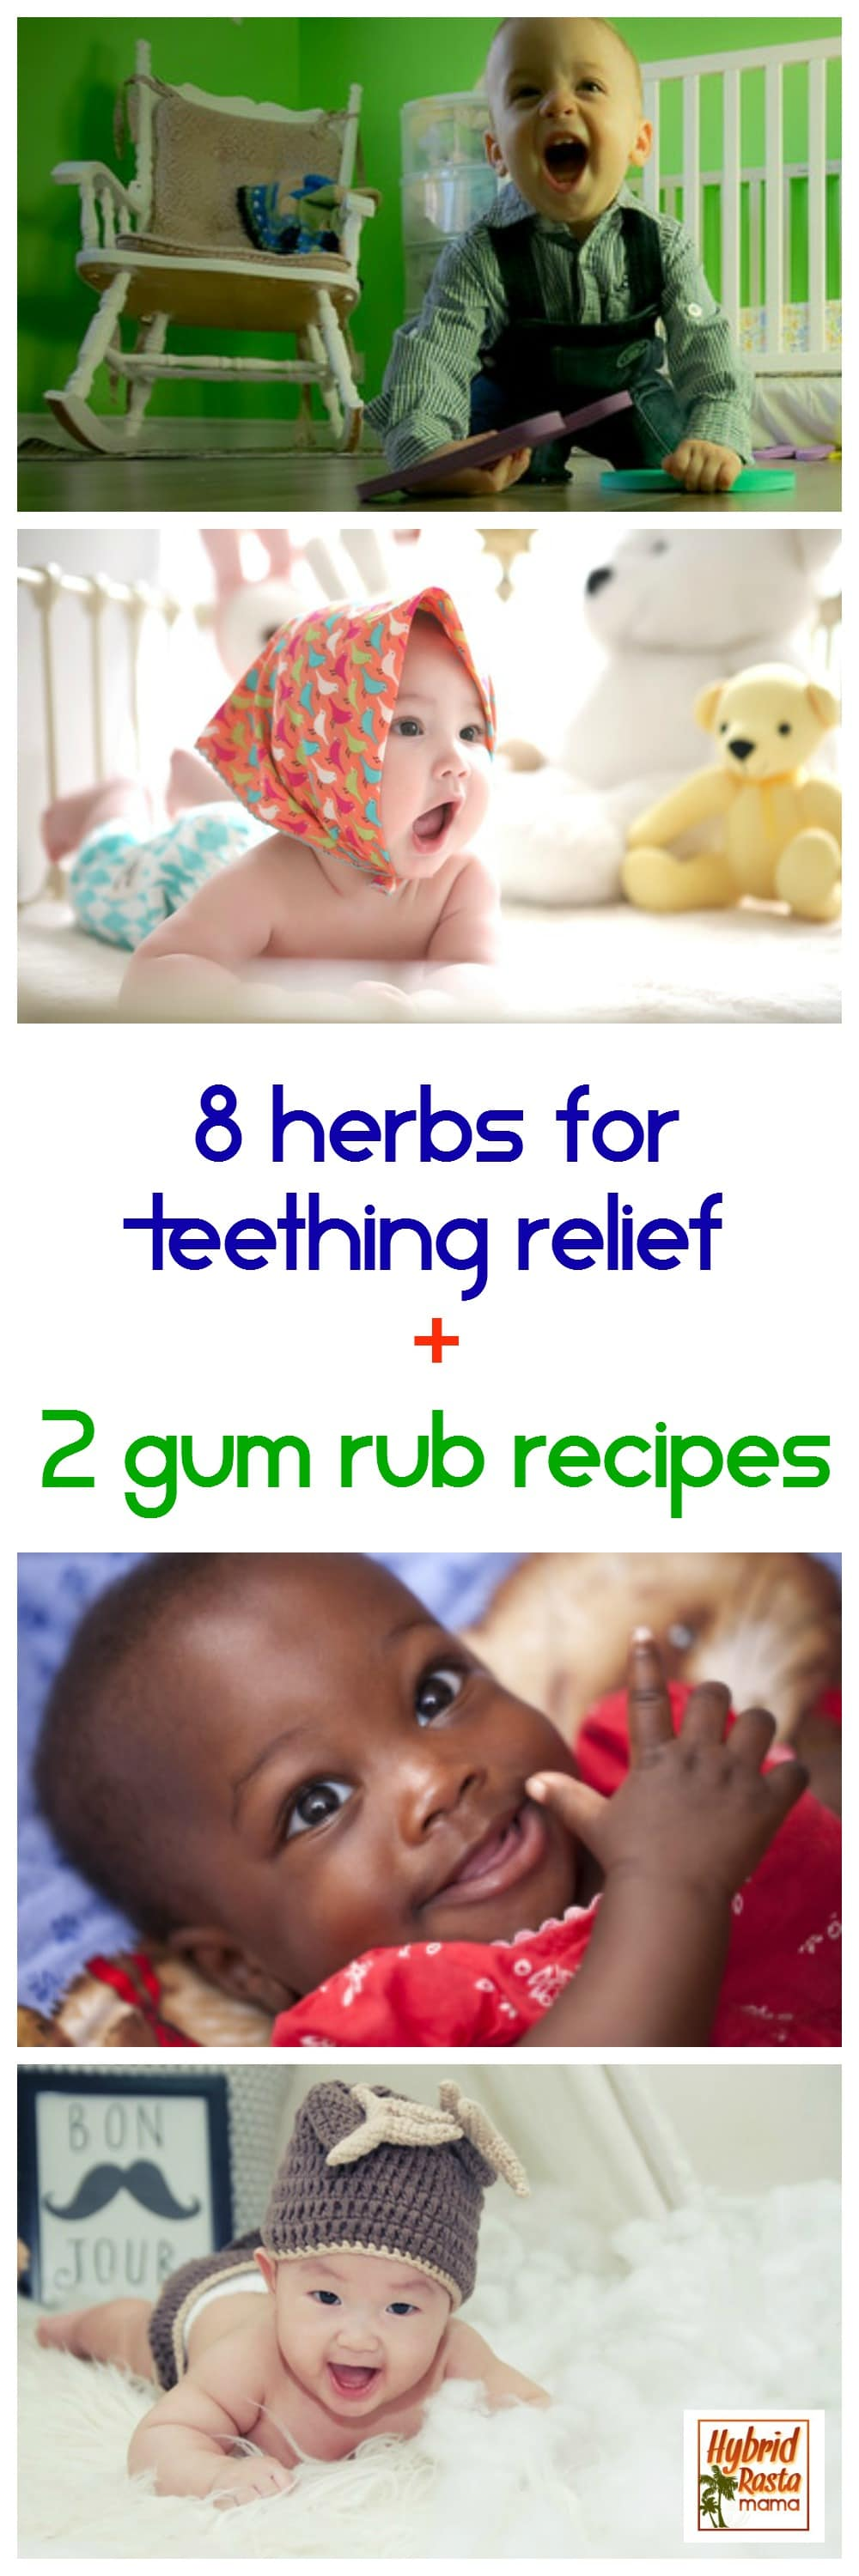 Teething is one of the roughest things babies and toddlers go through. Good thing they can get teething relief with herbs and these magical gum rub recipes. From HybridRastaMama.com